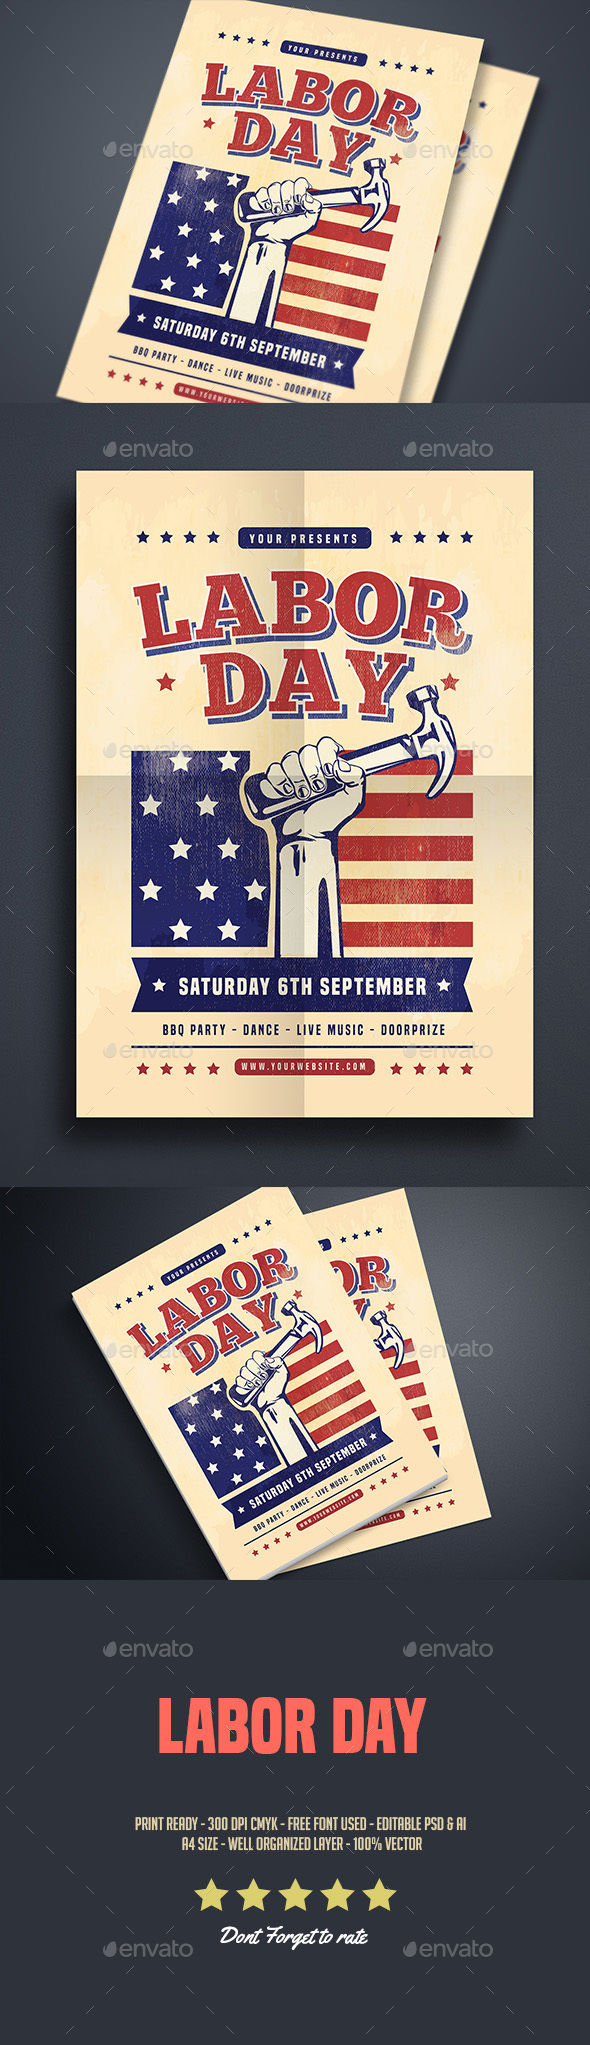 Labor Day Celebration Flyer by Guuver (Labor Day party flyer)